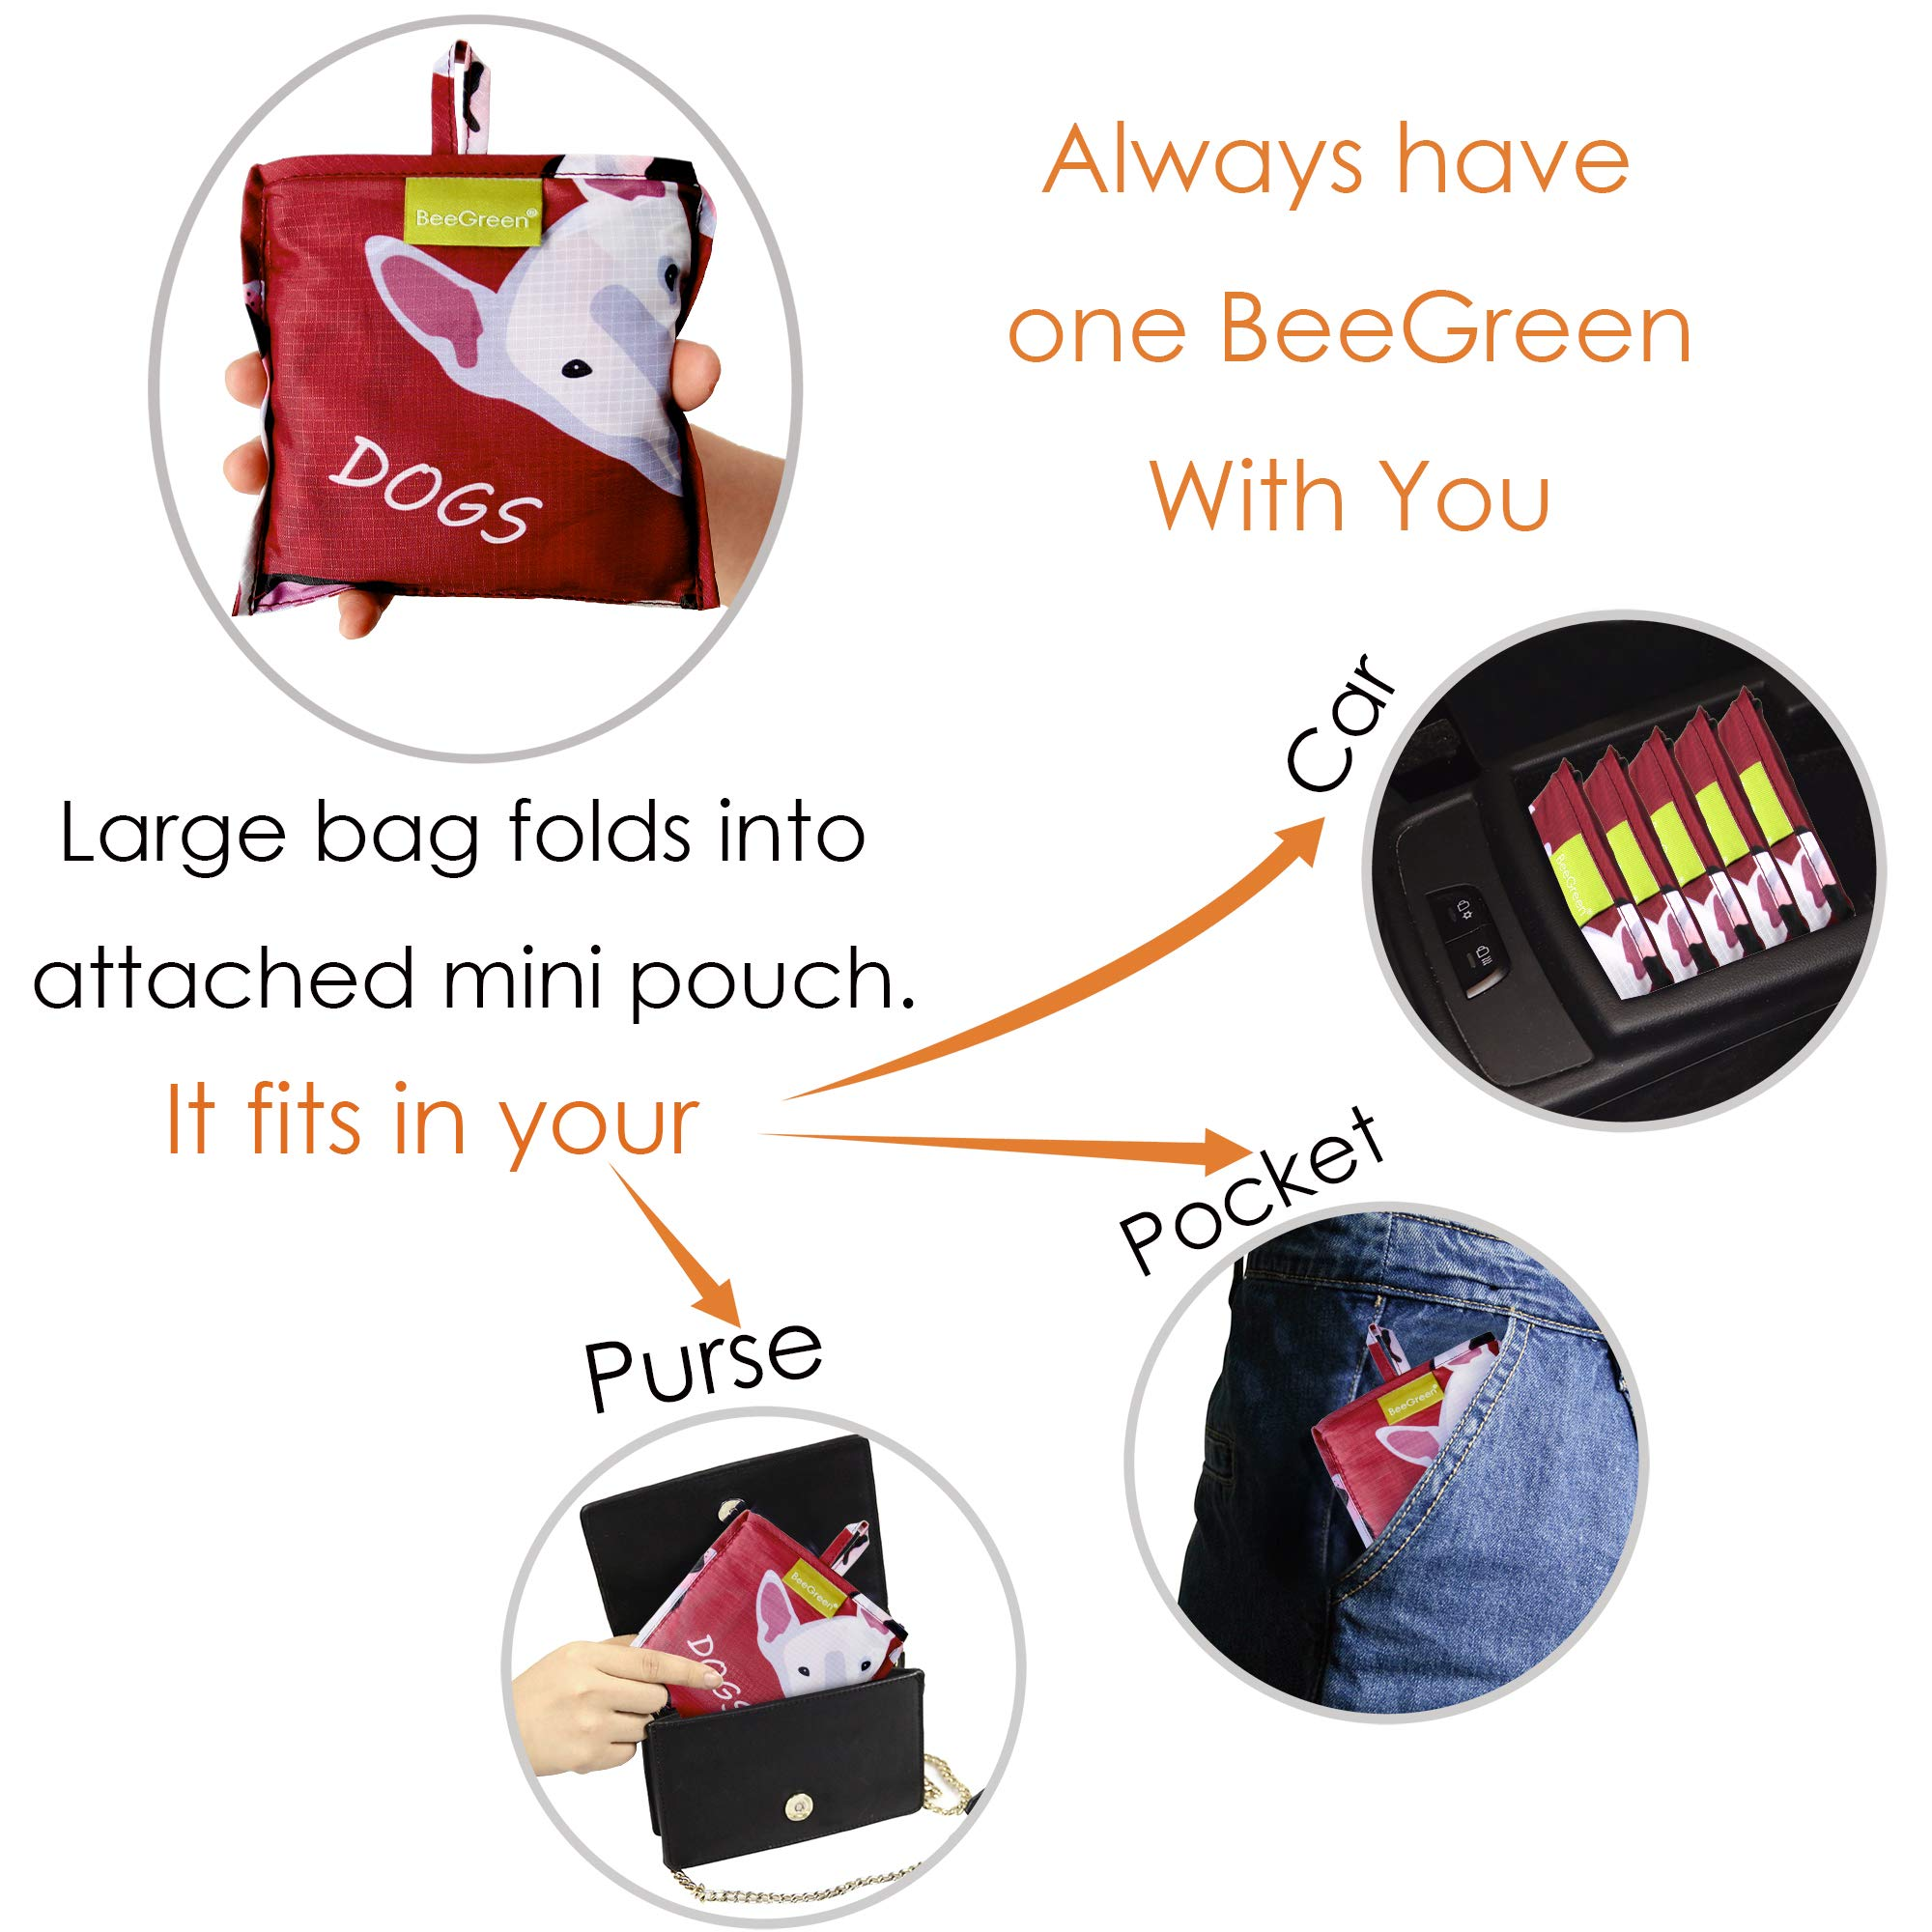 Grocery Bags Reusable Foldable 6 Pack Shopping Bags Large 50LBS Cute Groceries Bags with Pouch Bulk Ripstop Waterproof Machine Washable Eco-Friendly Nylon Elephant Hedgehog Cat Turtle Dog Penguin by BeeGreen (Image #6)